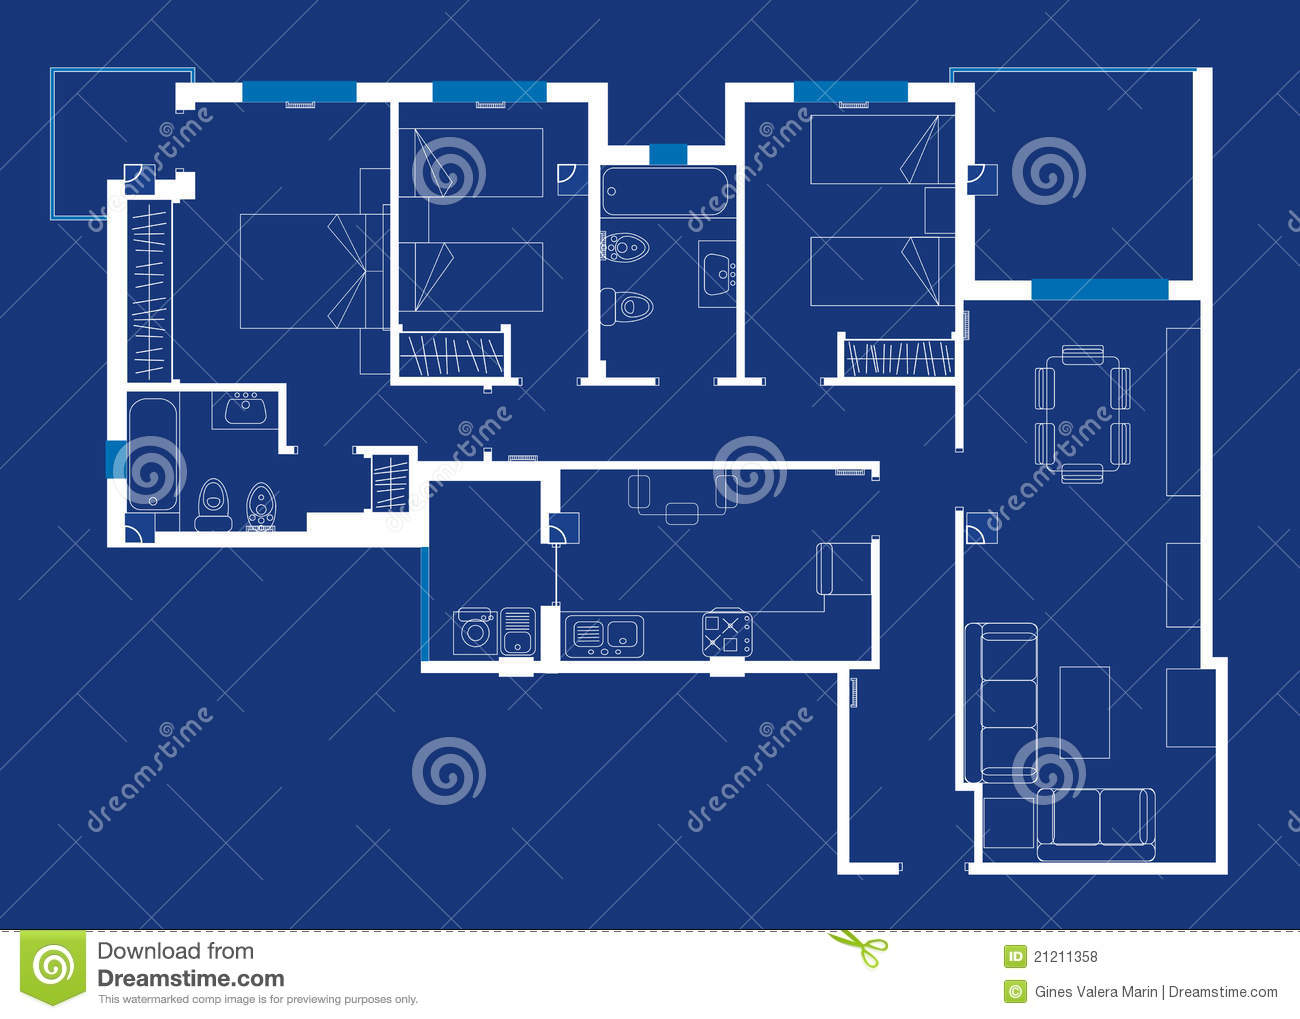 Https Www Dreamstime Com Royalty Free Stock Photos House Blueprint Image21211358